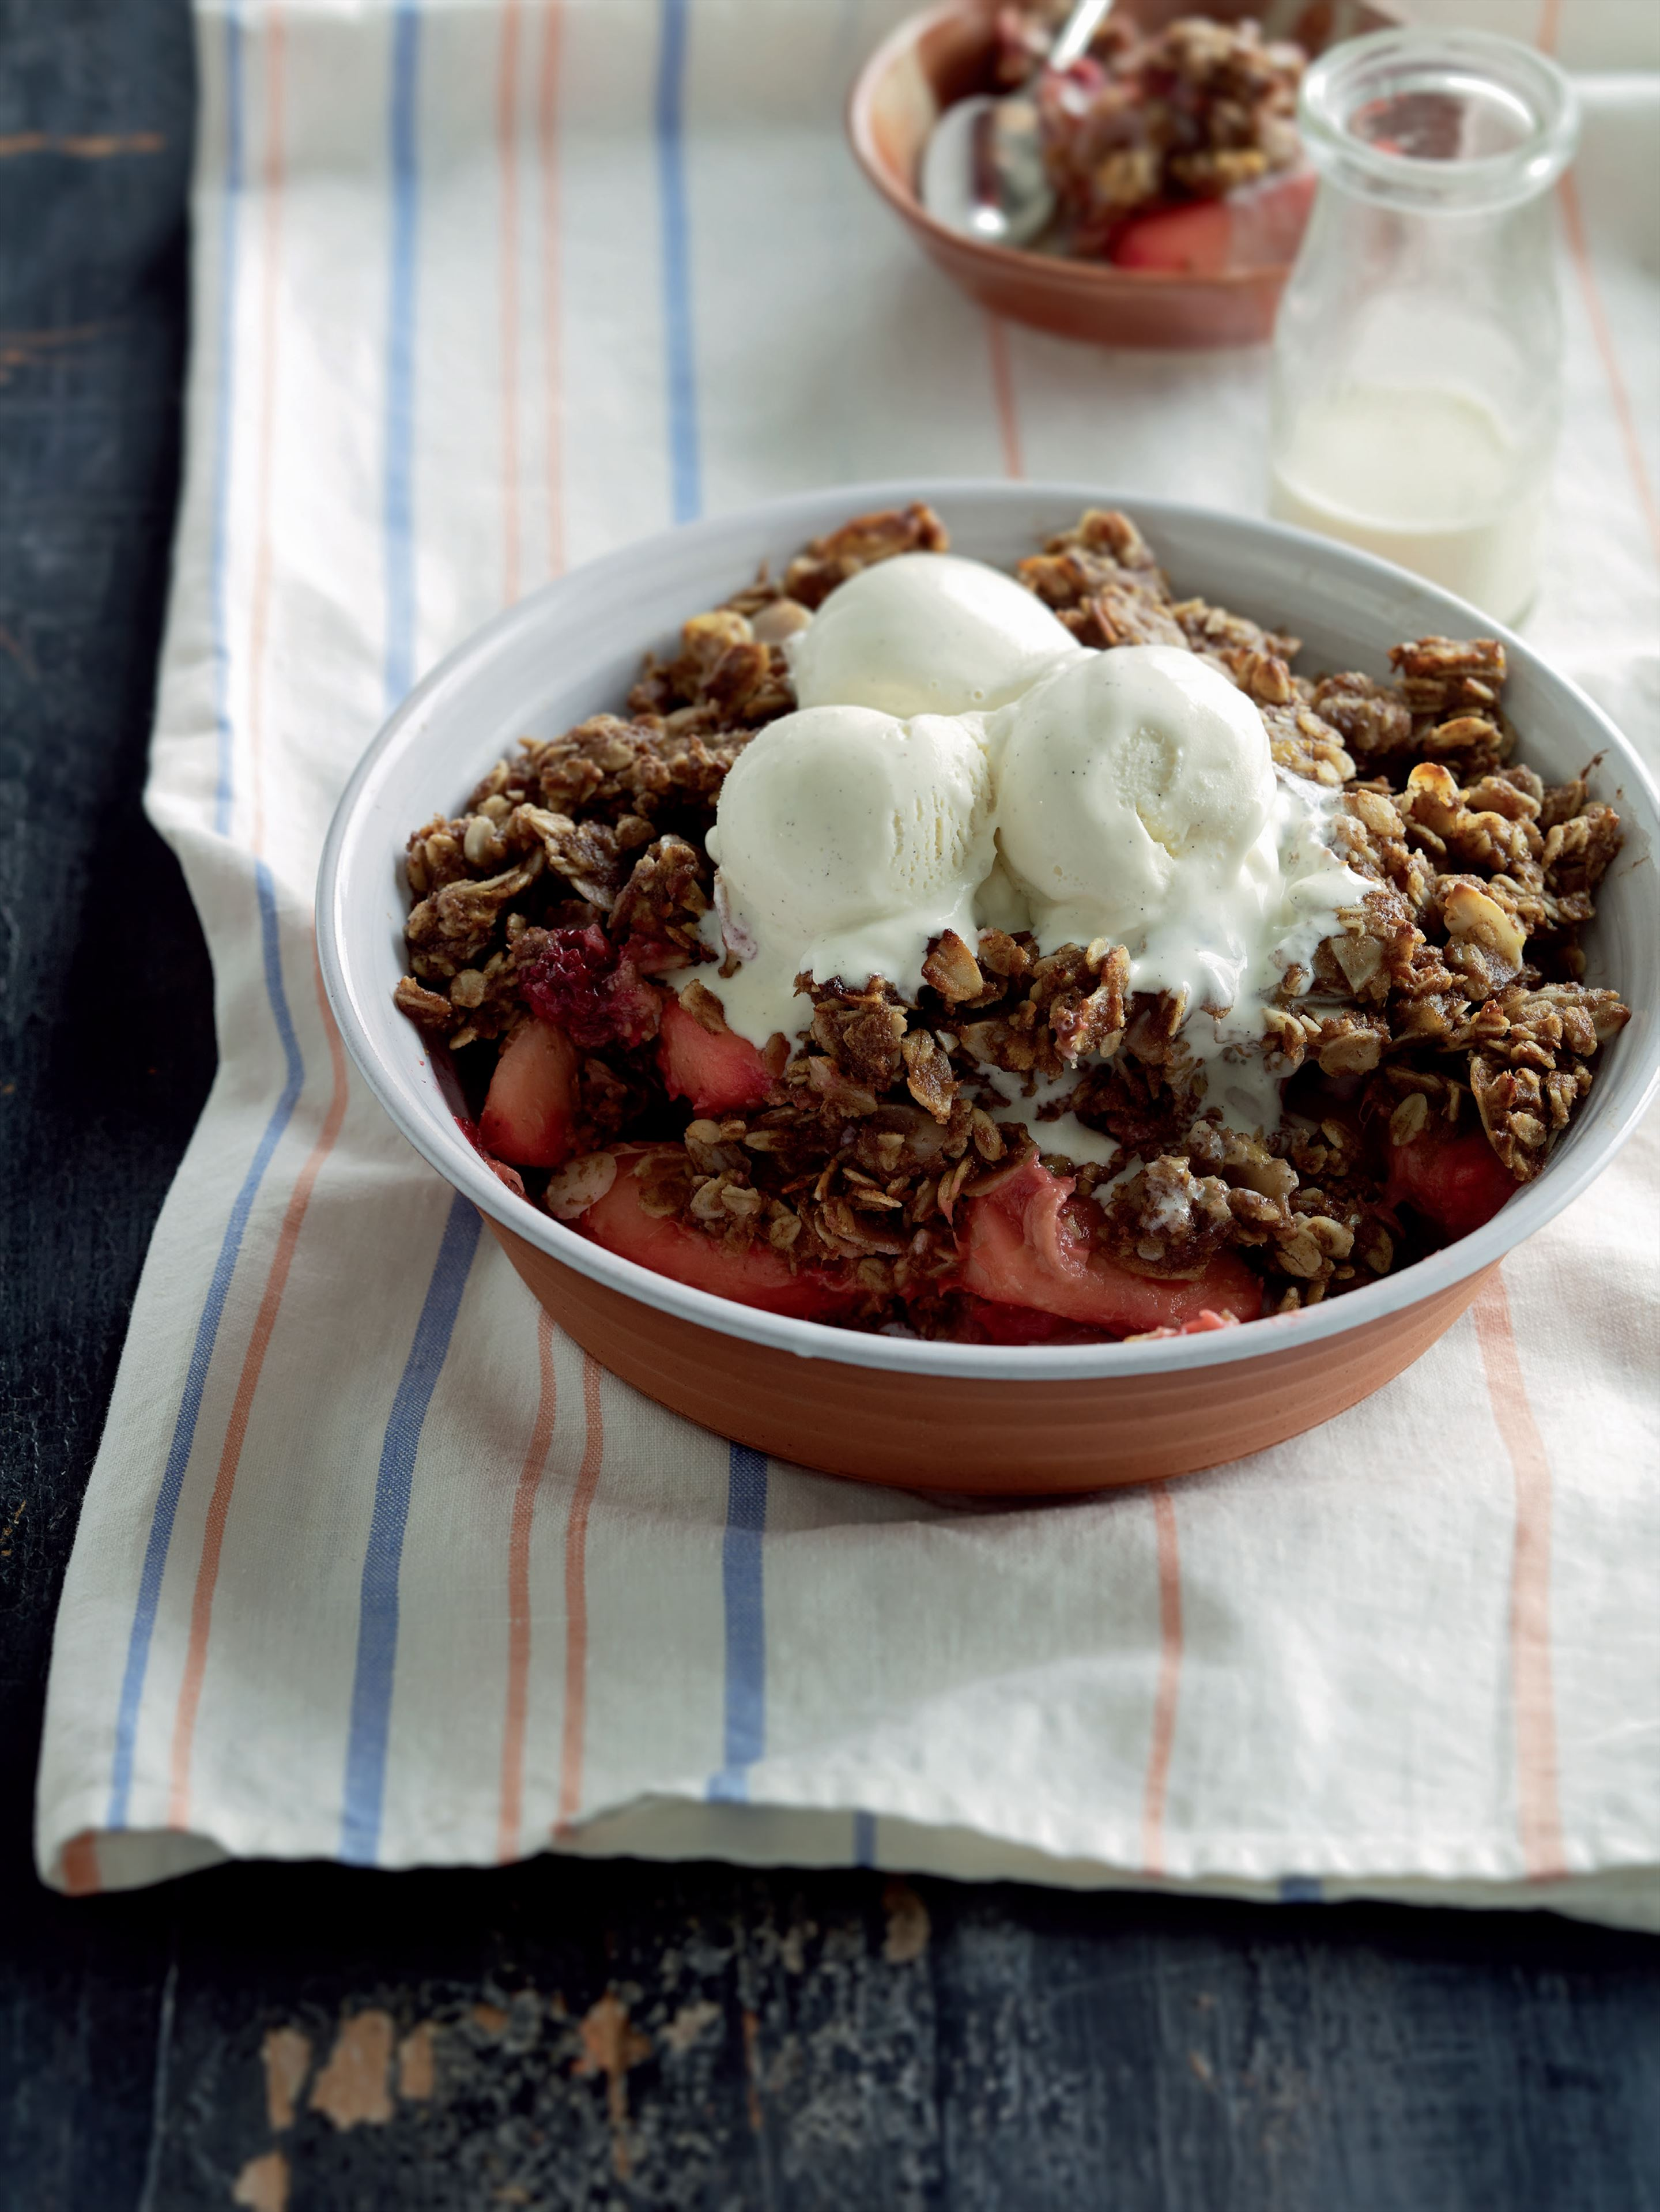 Rhubarb, apple and berry slow crumble